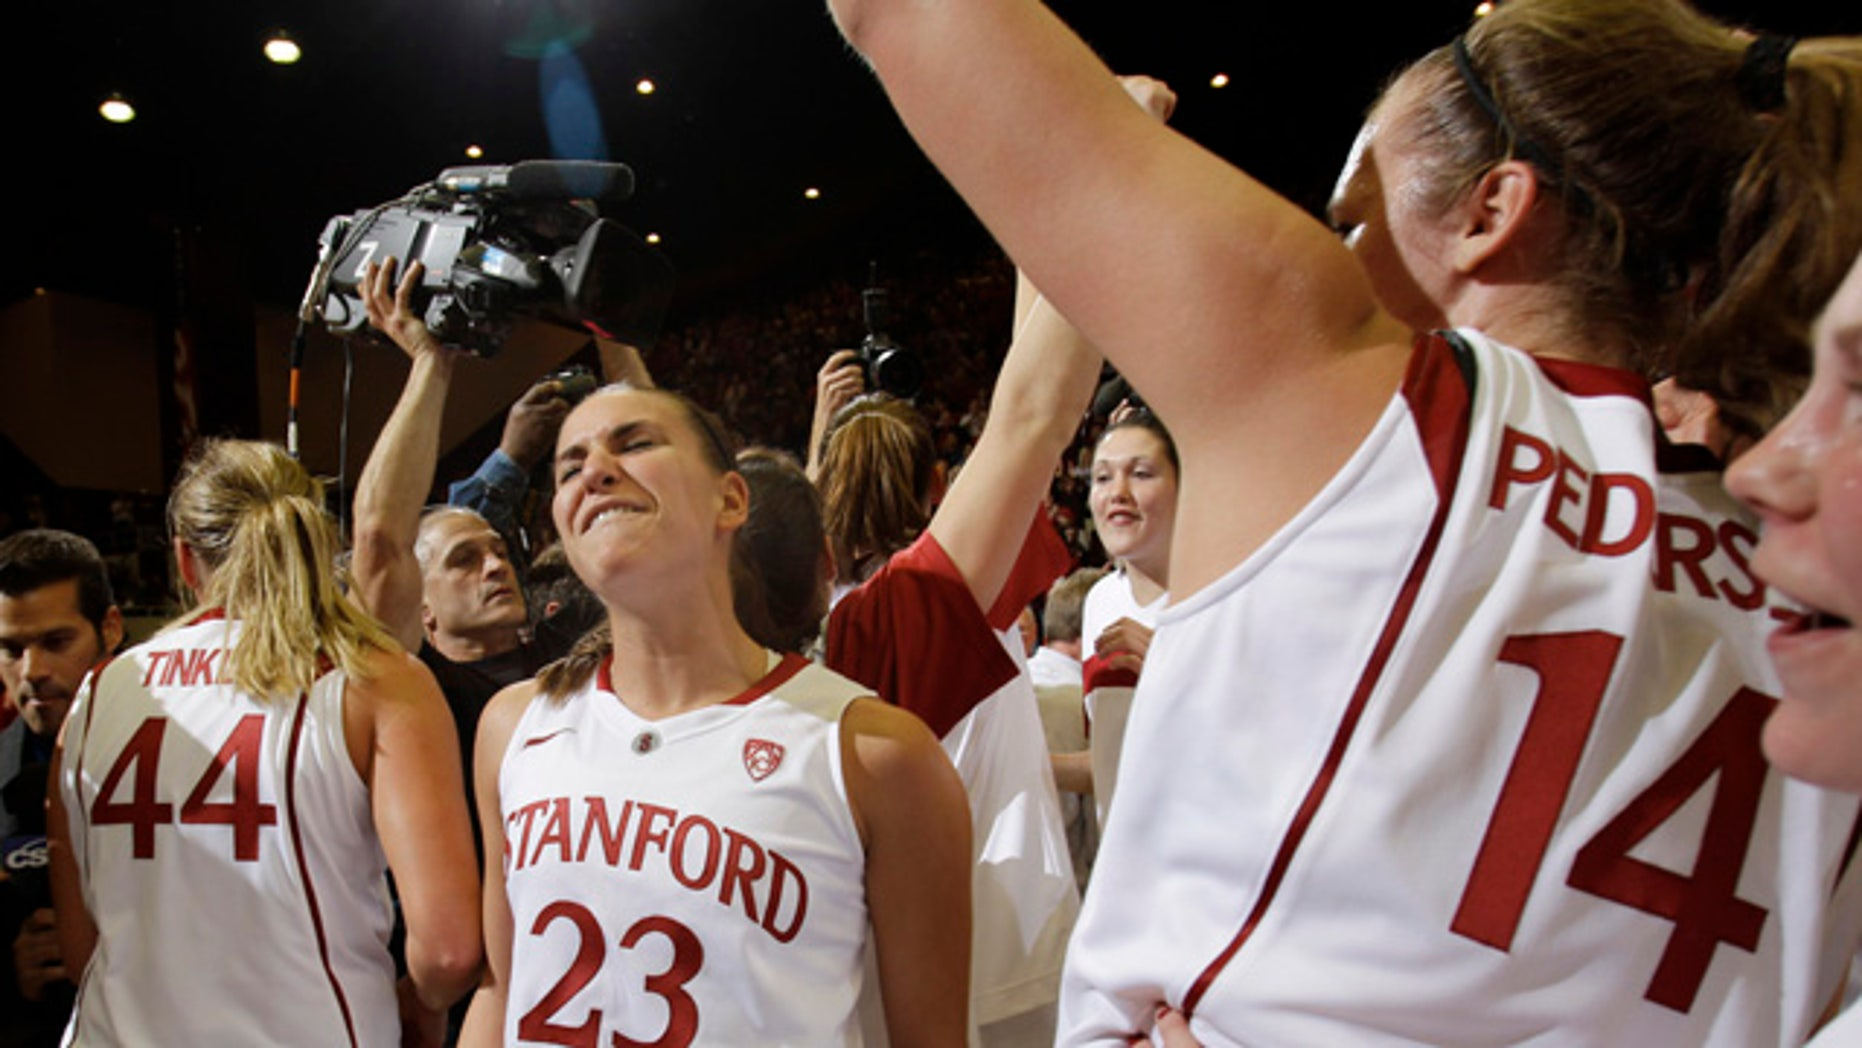 Dec. 30: Stanford guard Jeanette Pohlen (23) celebrates with teammates after Stanford defeated Connecticut 71-59 in an NCAA college basketball game in Stanford, Calif.